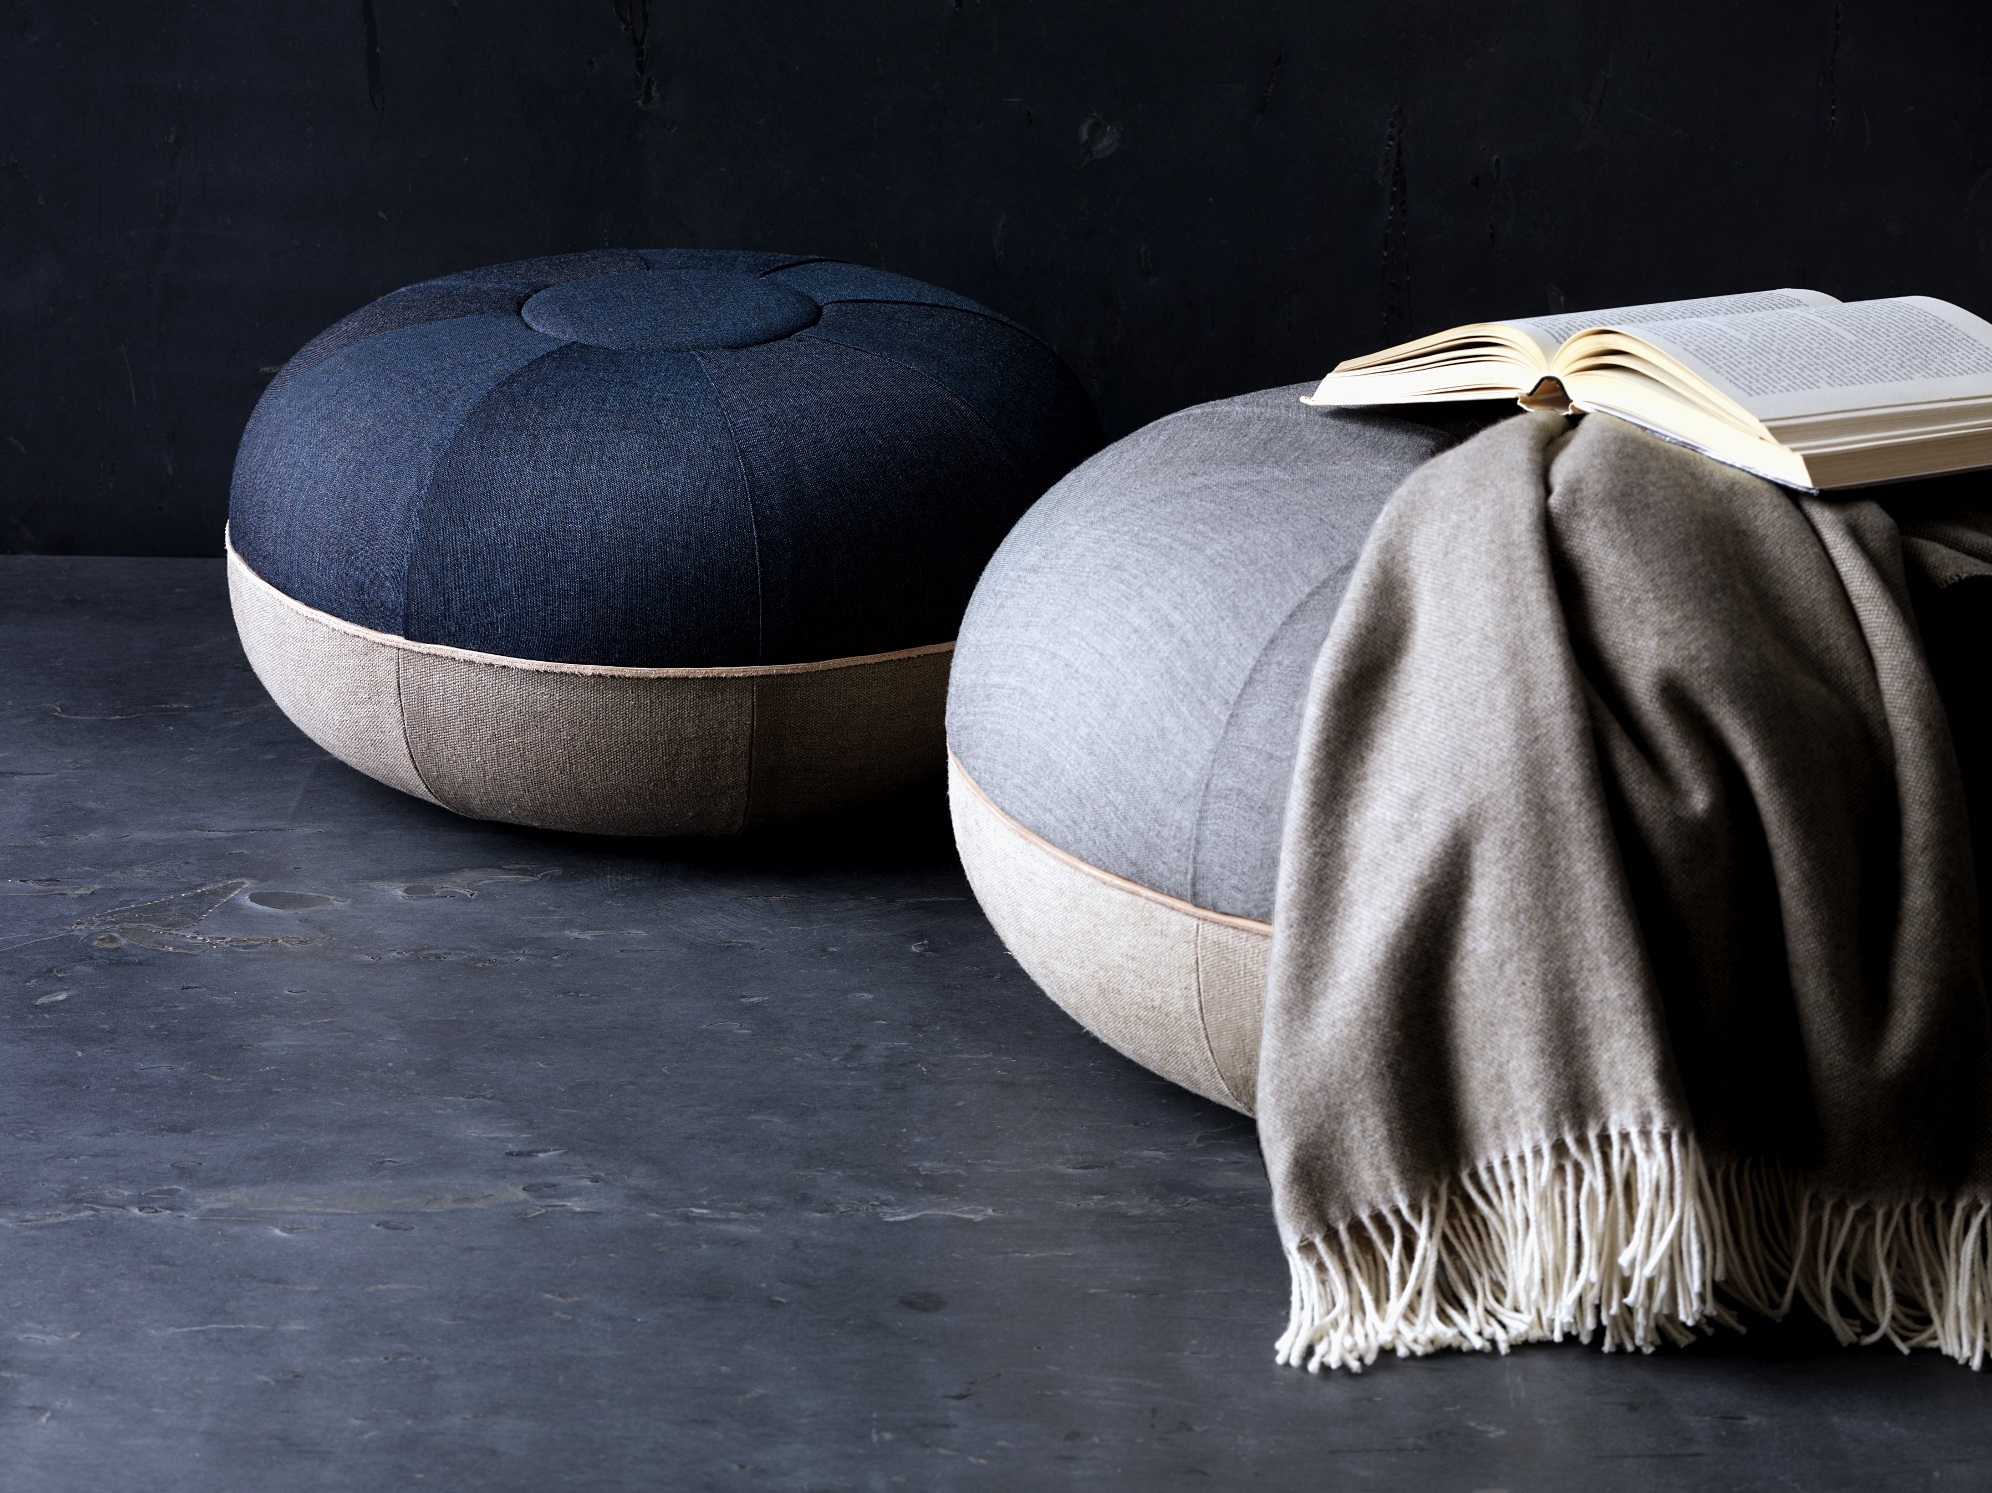 Nordic Cool Objects